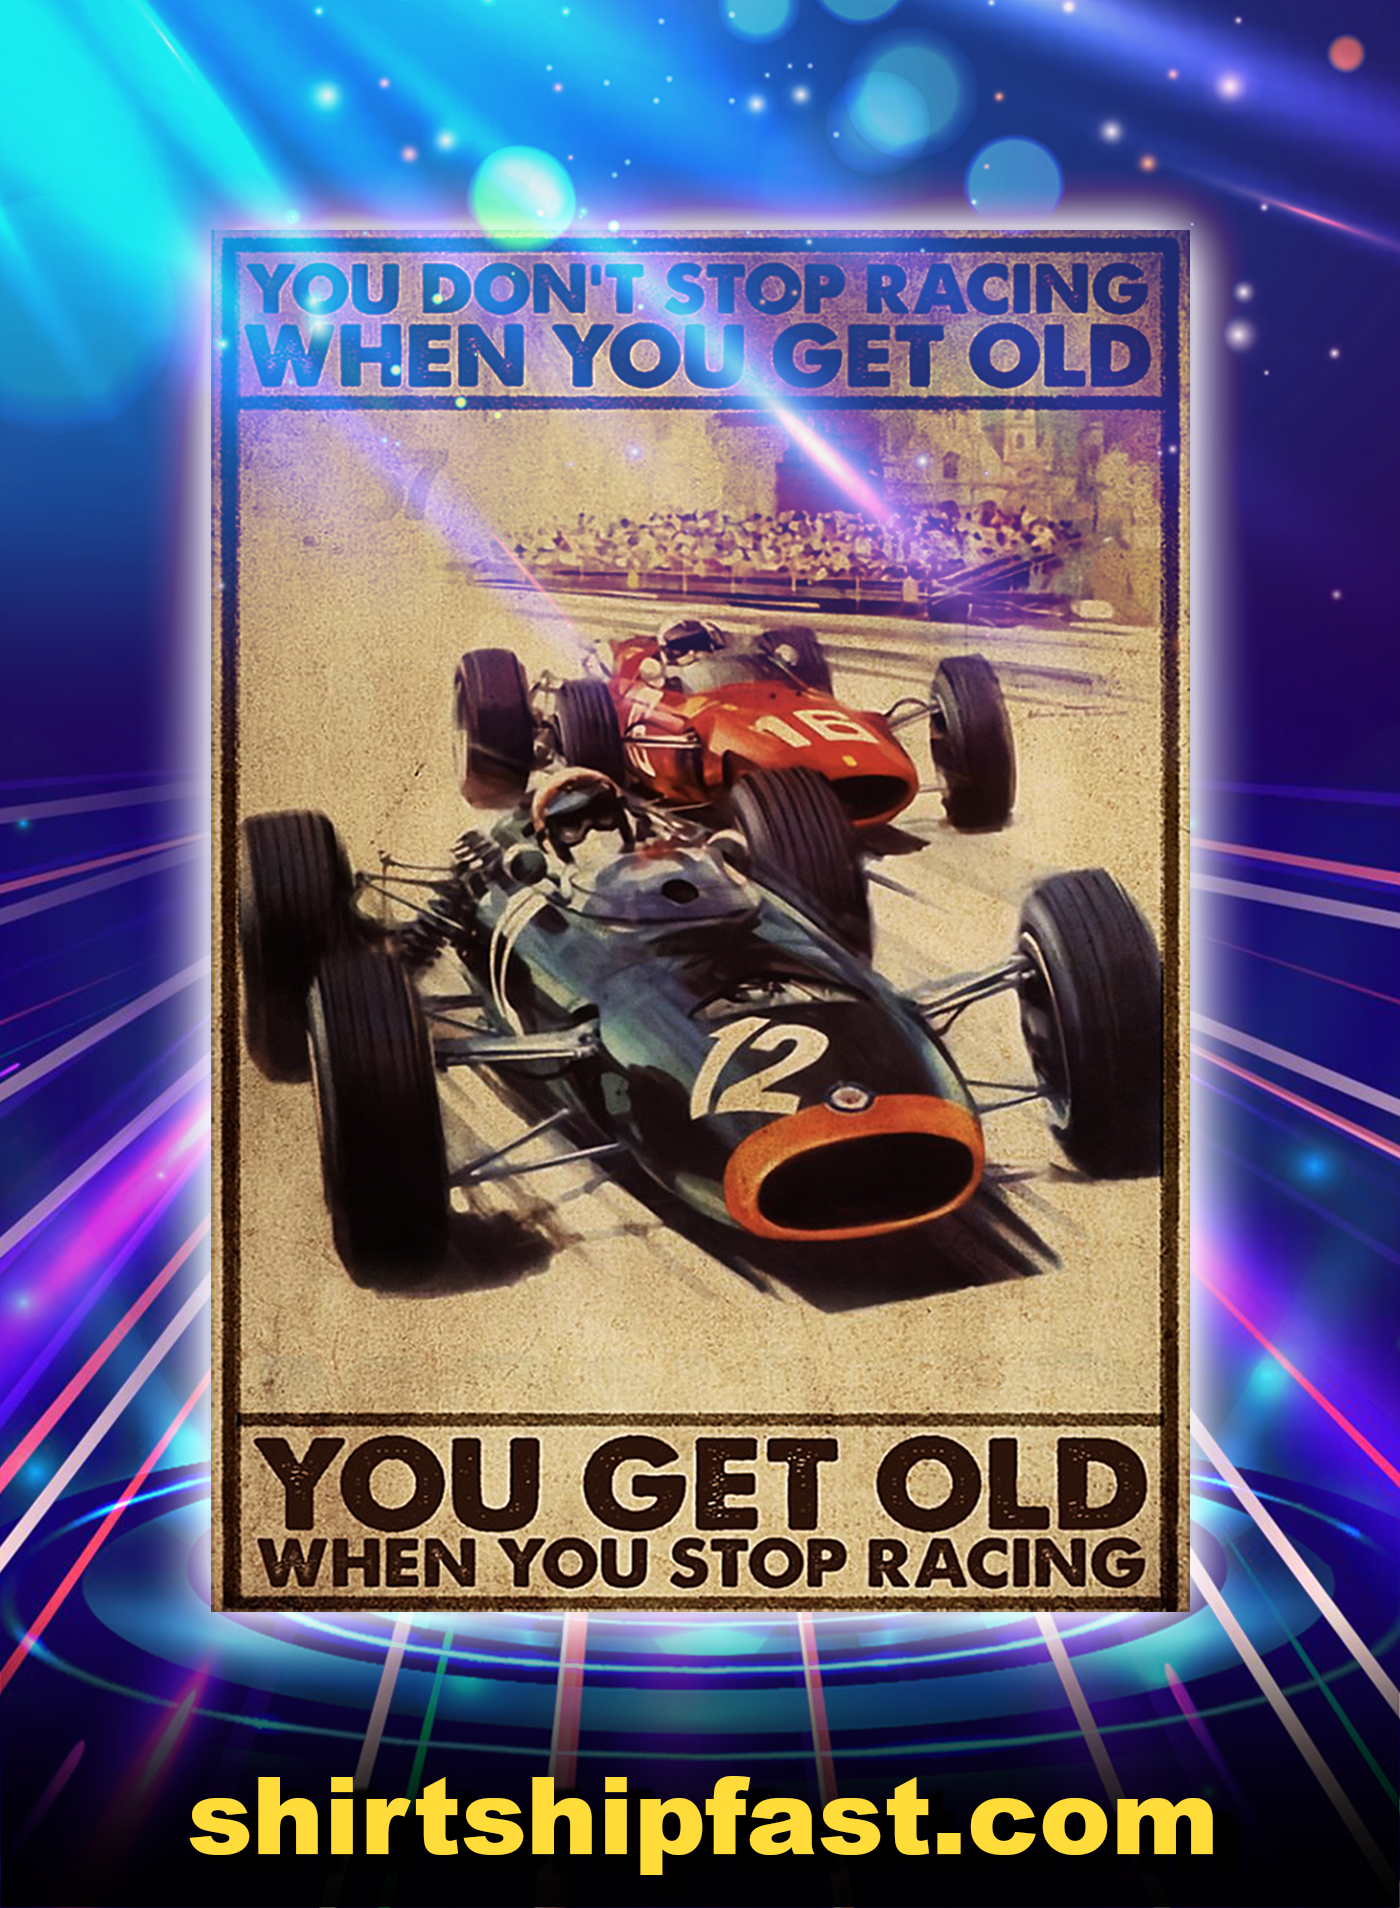 Drag racing you don't stop racing when you get old poster - A1